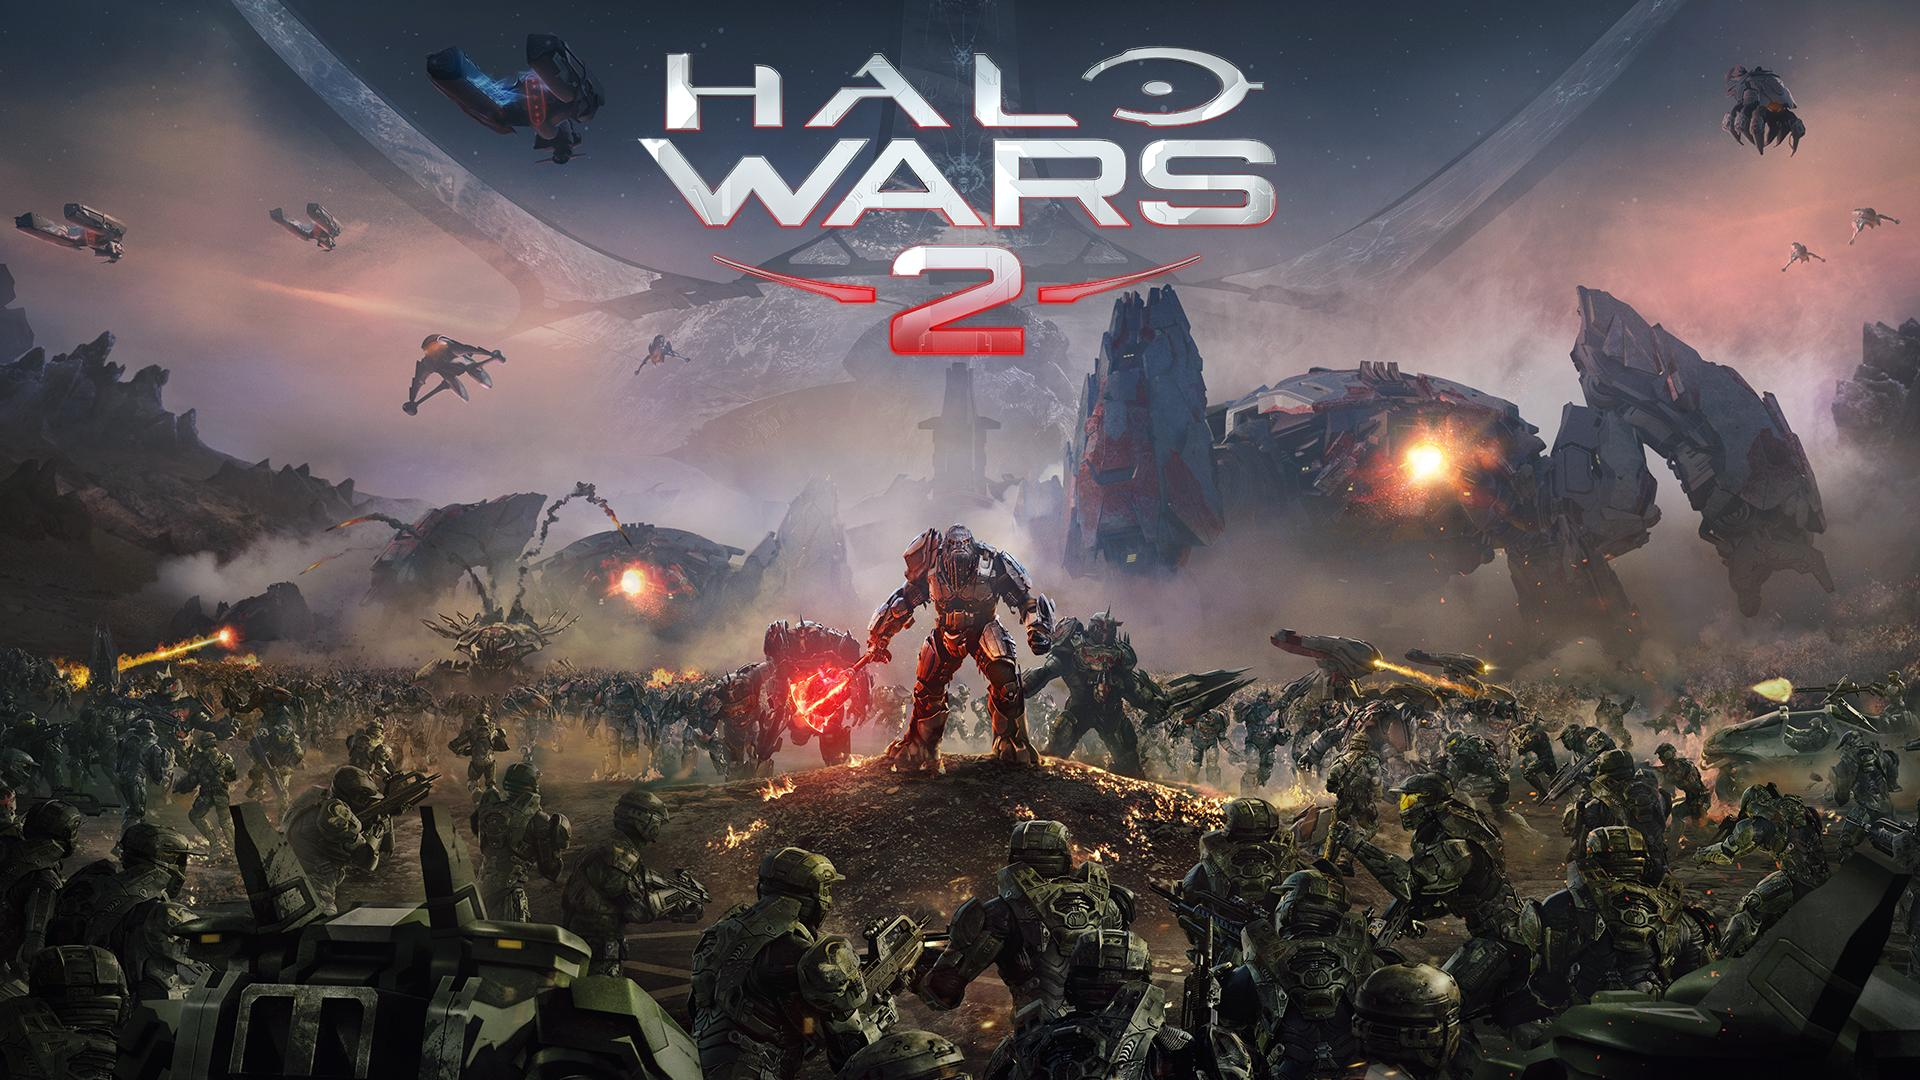 halo wars 2 armies